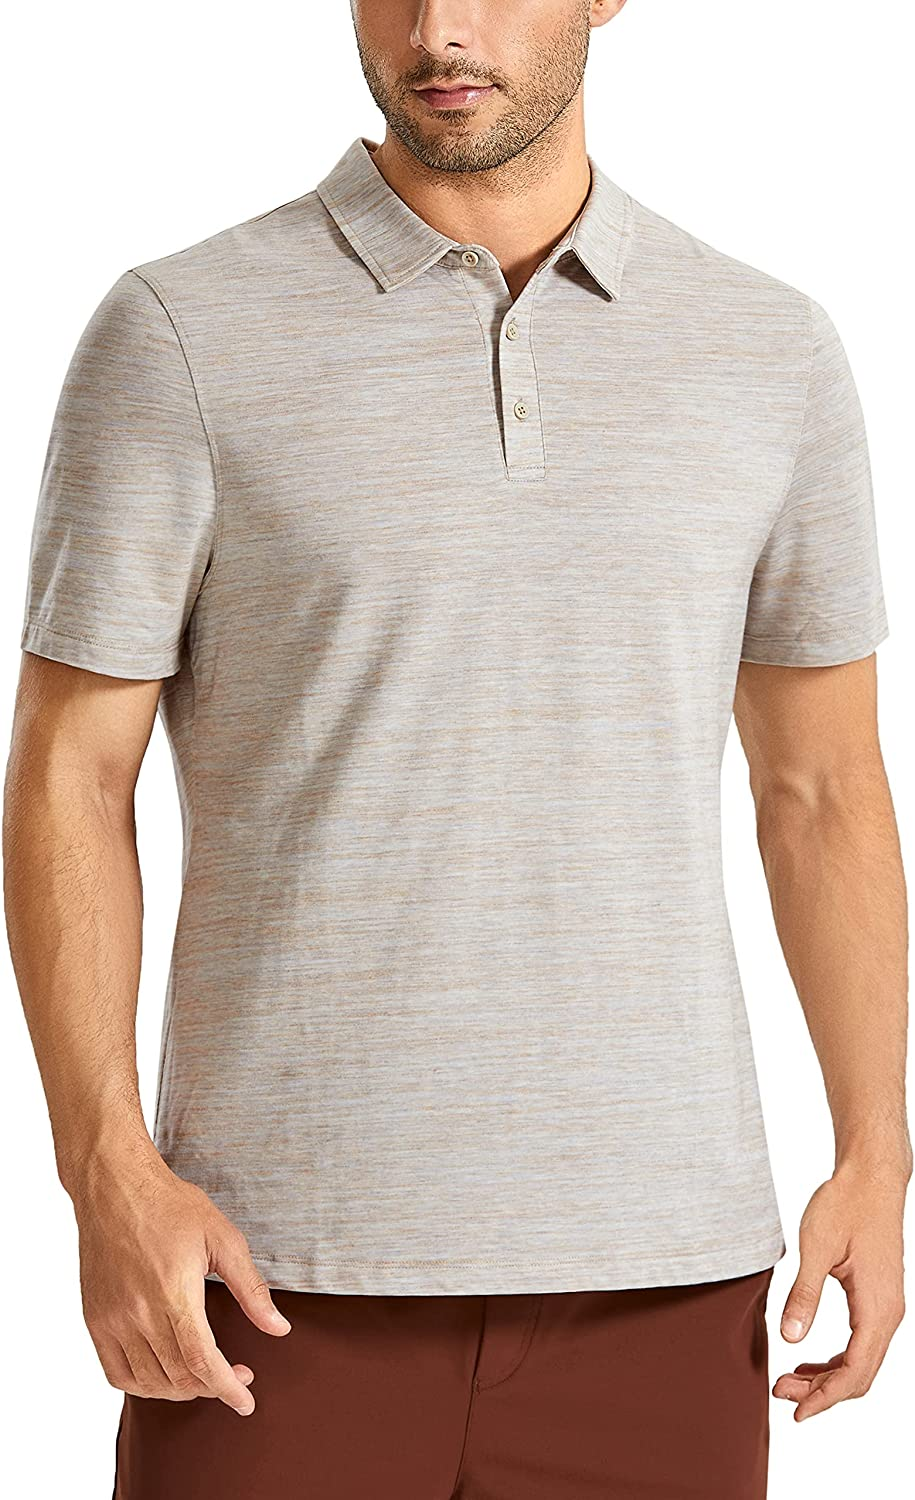 CRZ Ranking TOP13 YOGA Men's Short Sleeve Golf Polo Shirts Athletic Max 42% OFF Dry Fit T-